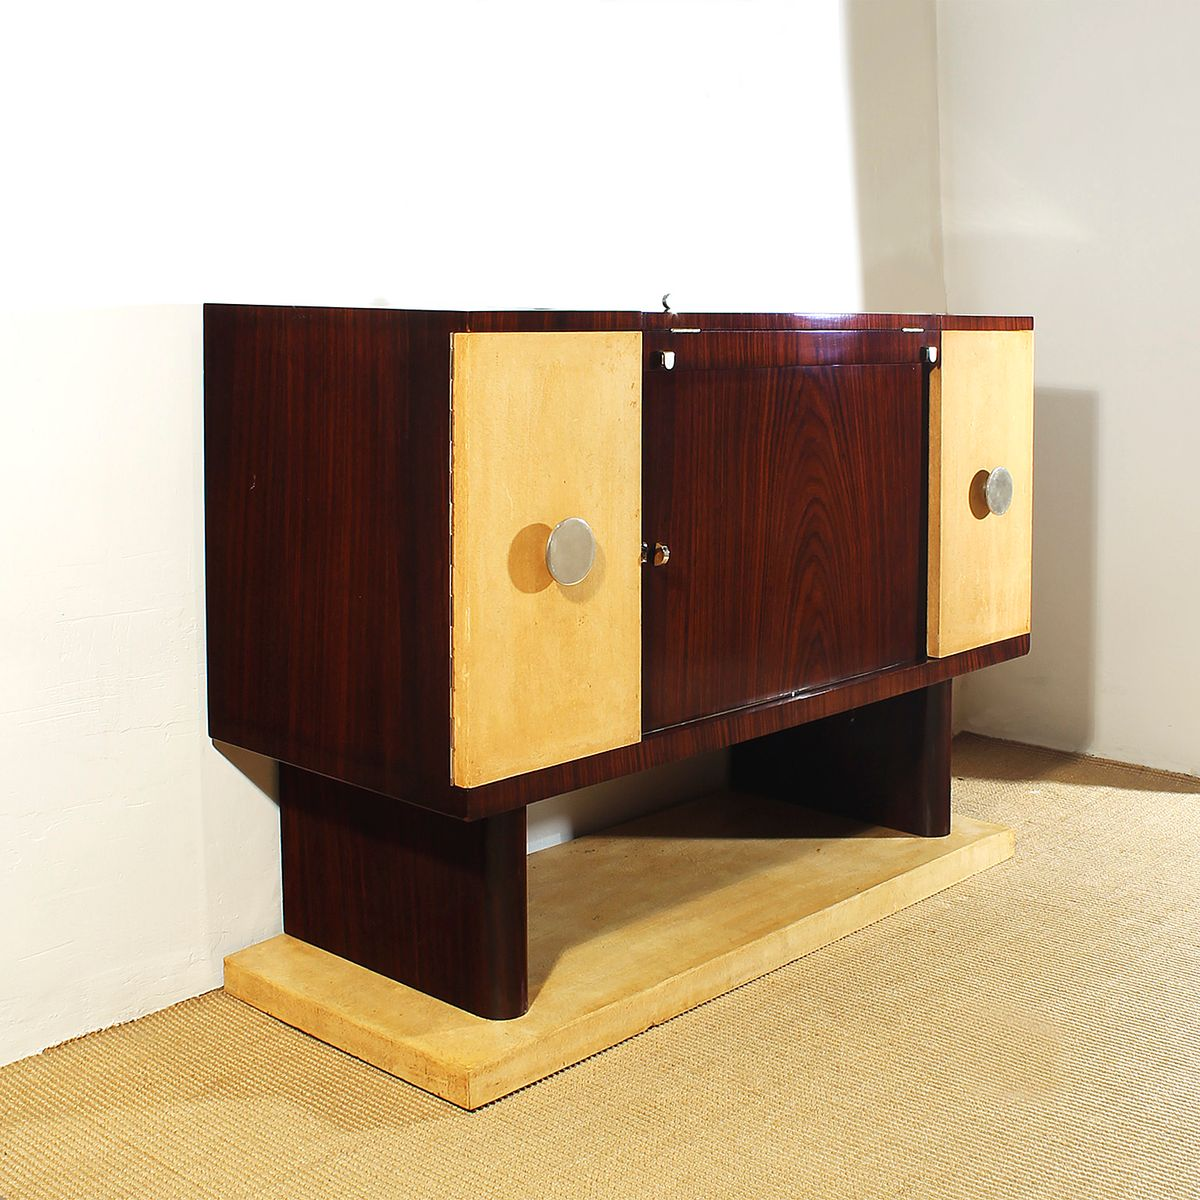 Art deco small bar cabinet 1930 for sale at pamono for Small bar cabinet